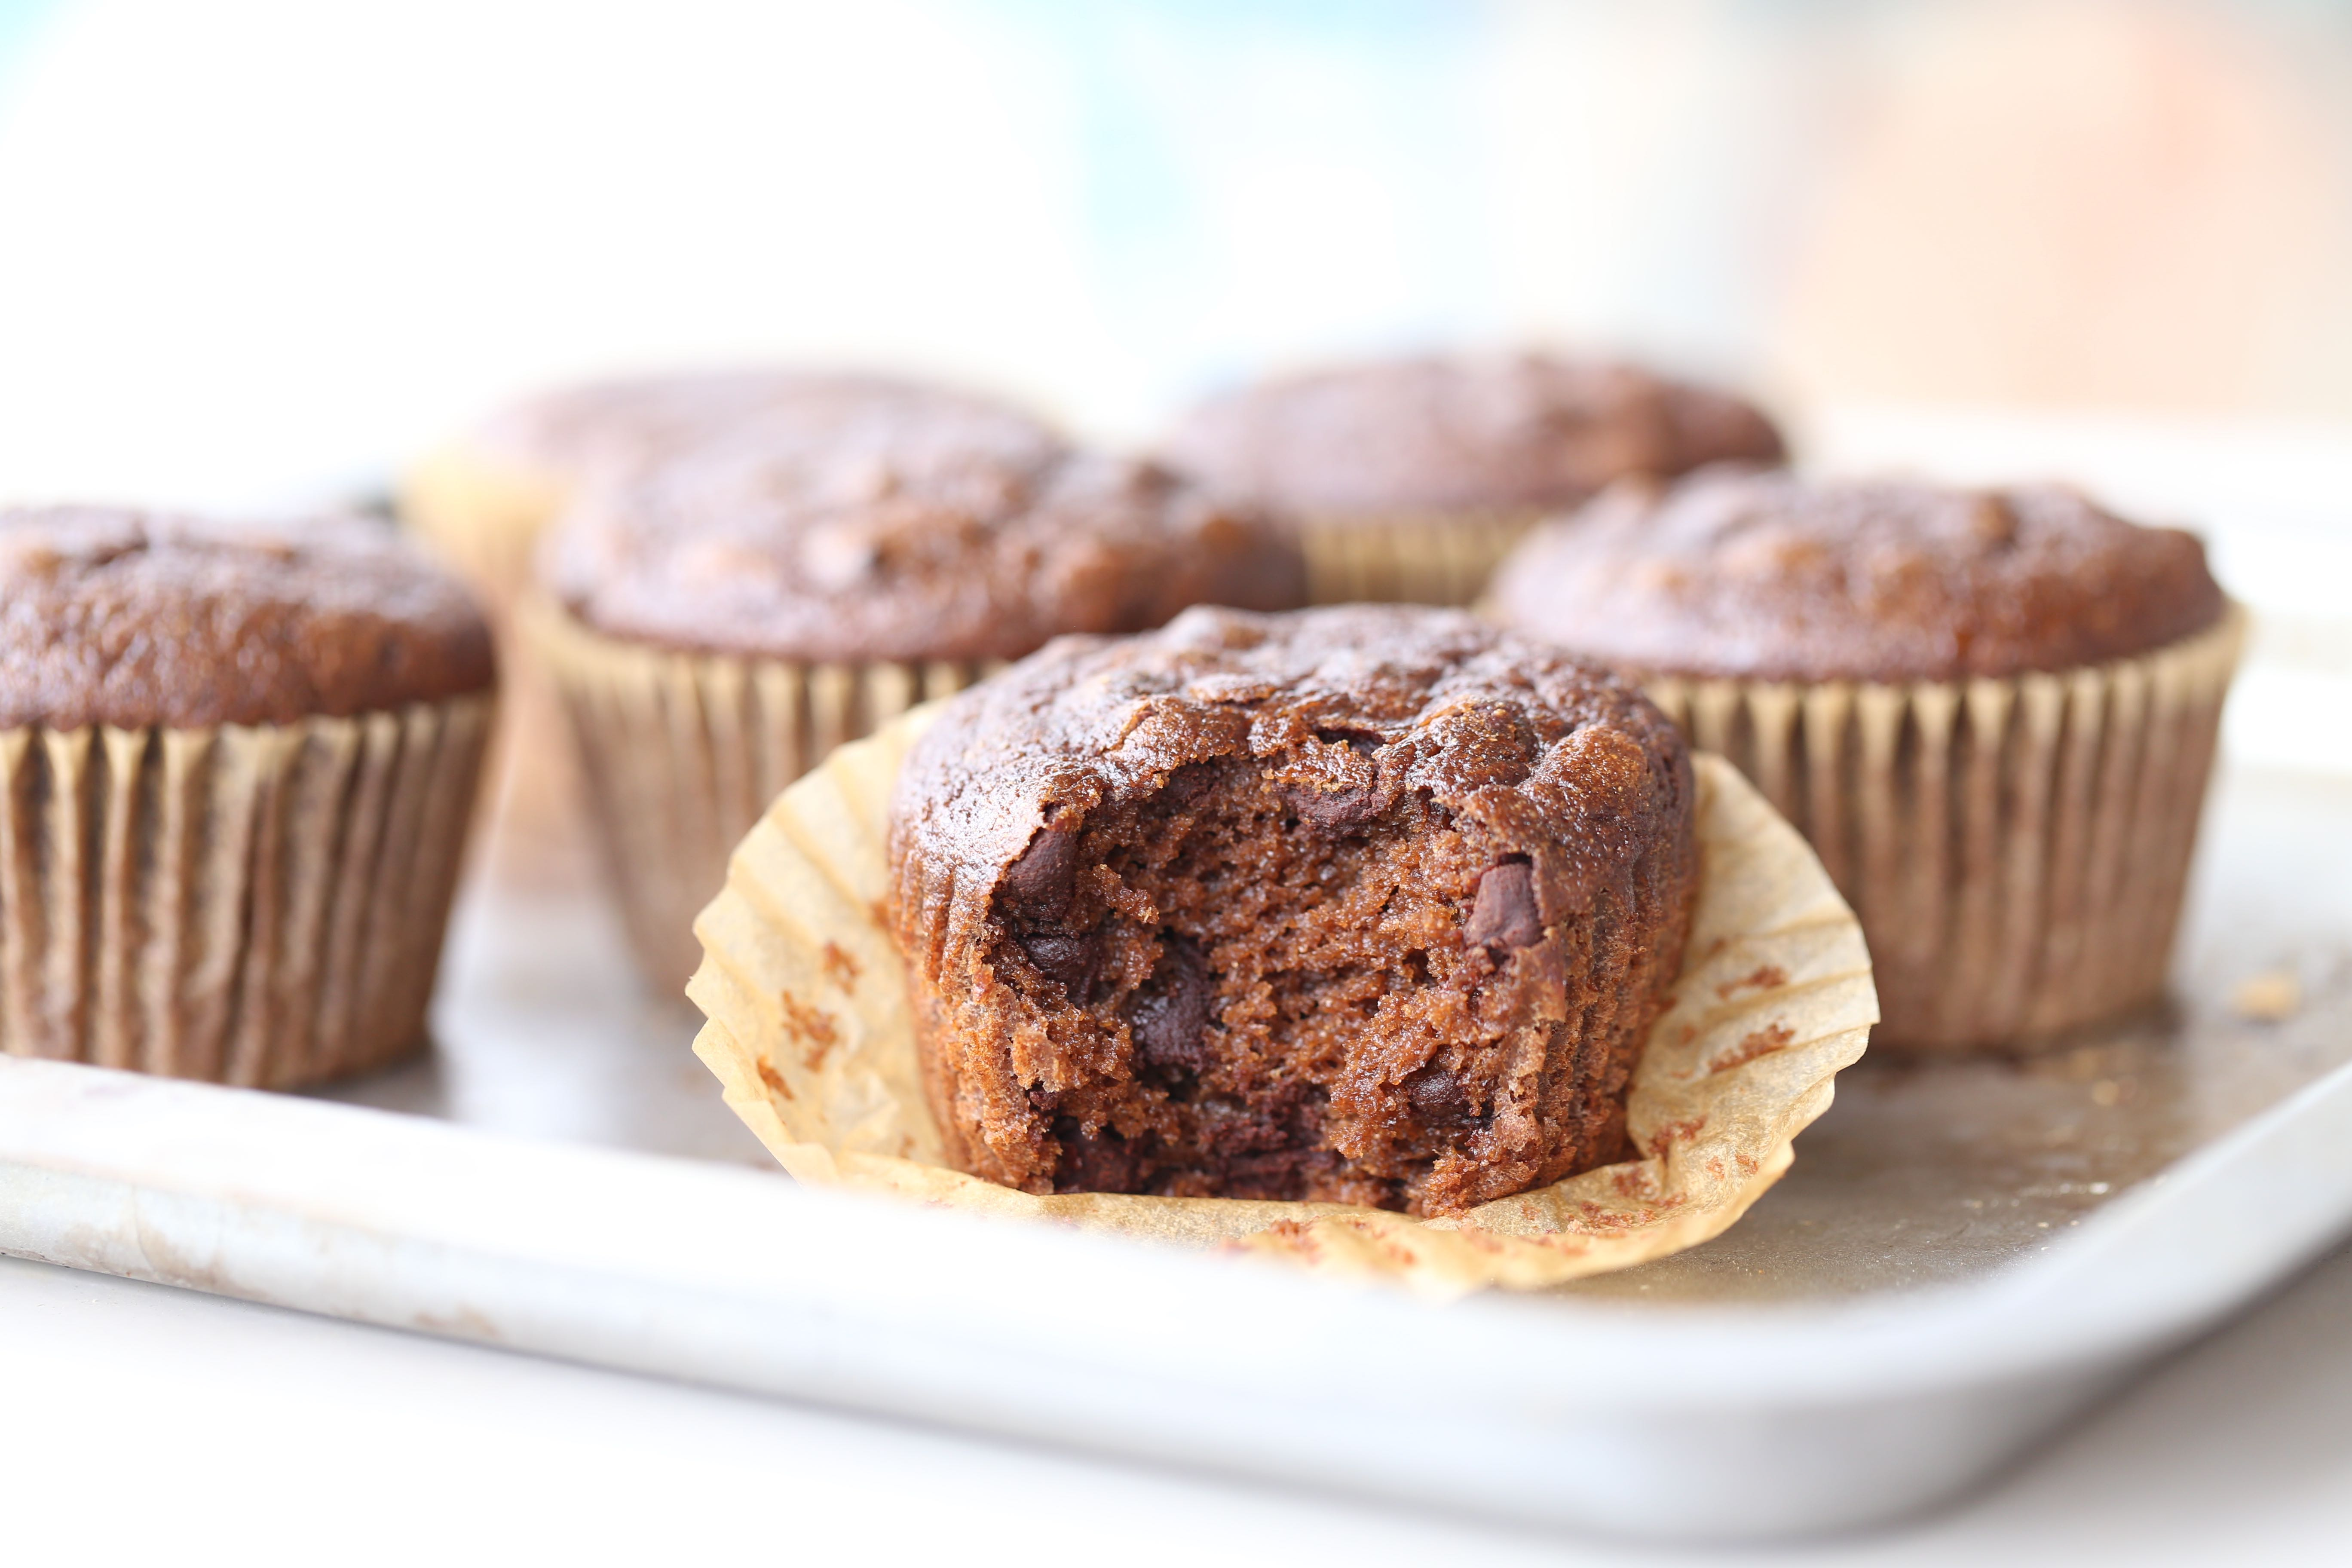 Paleo Mocha Chocolate Chip Muffins with Hidden Veggies